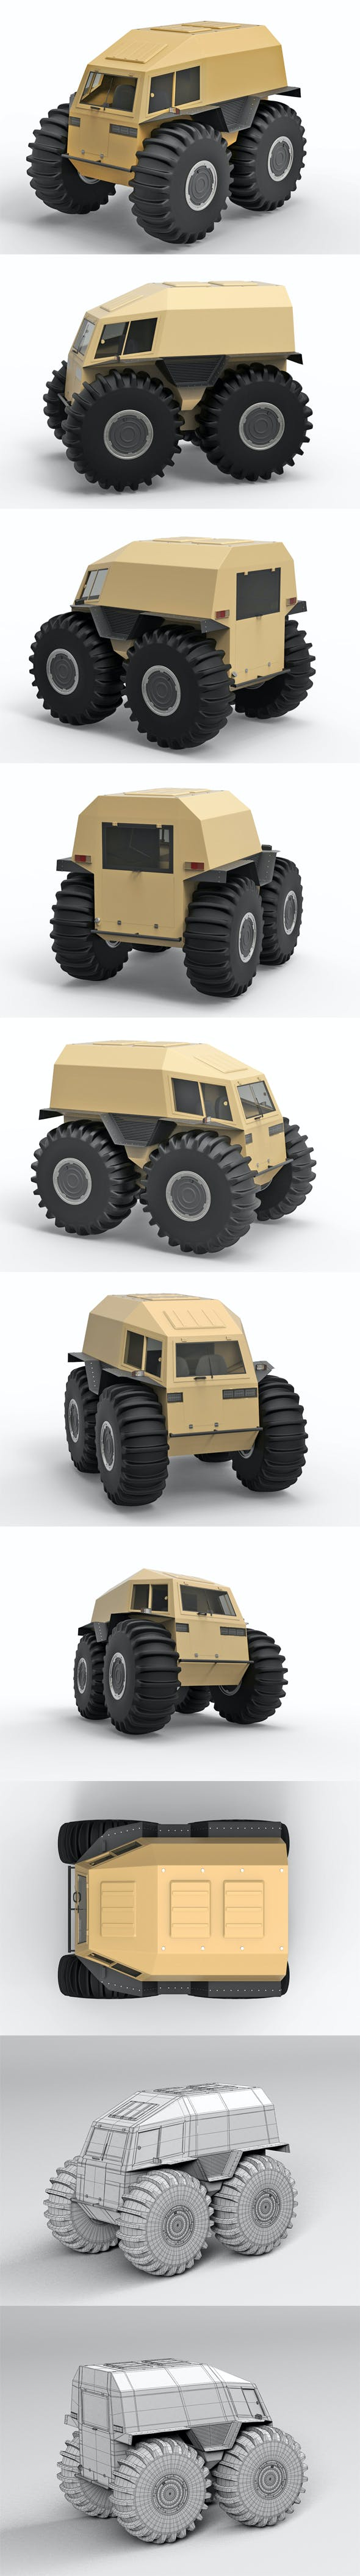 Cross country vehicle SHERP - 3DOcean Item for Sale